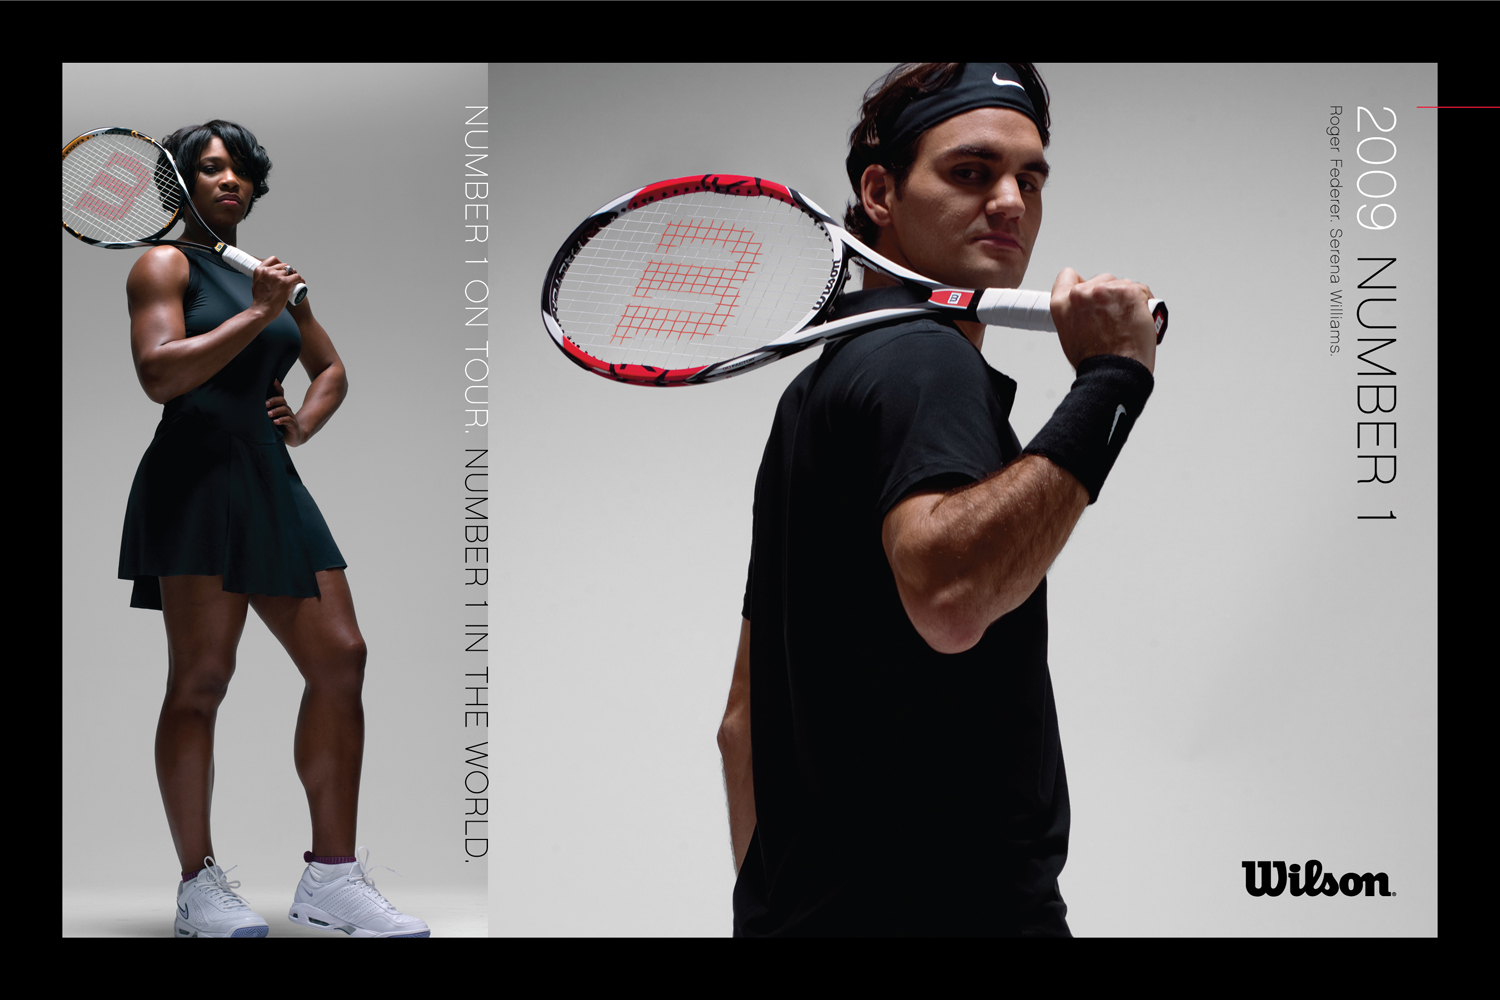 Roger Federer And Serena Williams The Tennis Twins